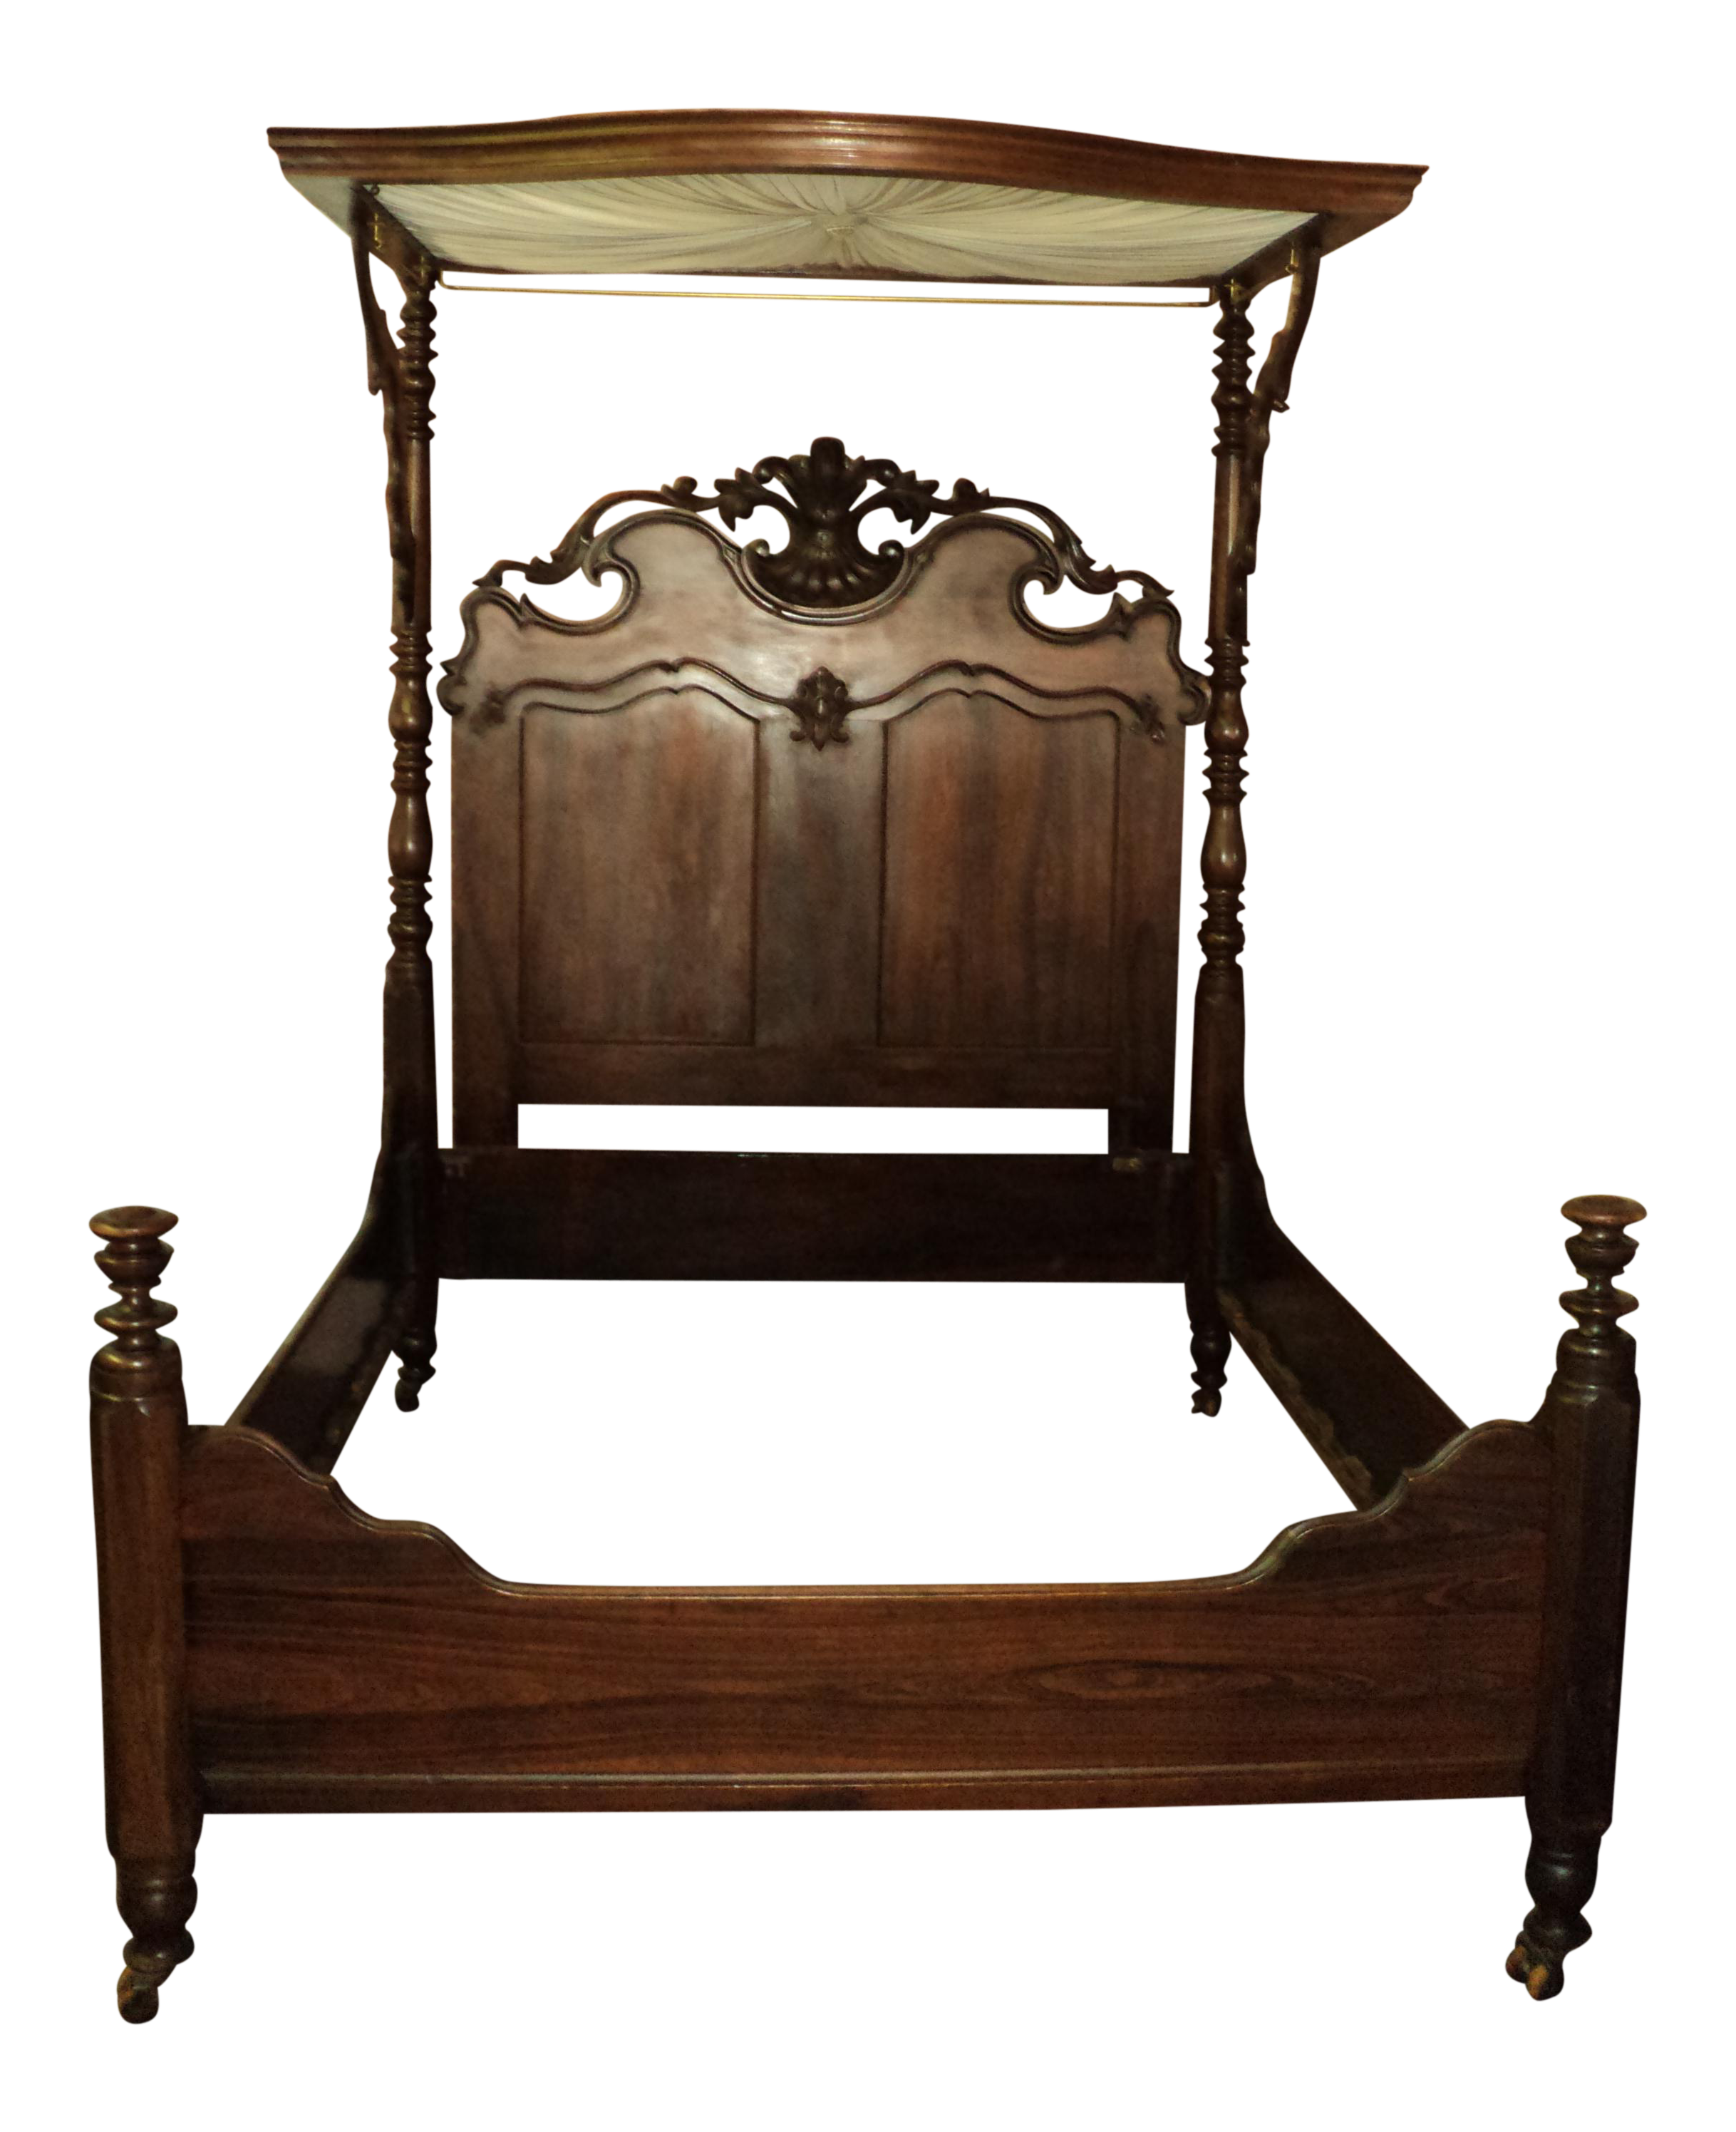 Antique Louis XV Revival Victorian Rosewood Canopy Half Tester Bed - Image 1 of 11  sc 1 st  Chairish & Antique Louis XV Revival Victorian Rosewood Canopy Half Tester Bed ...